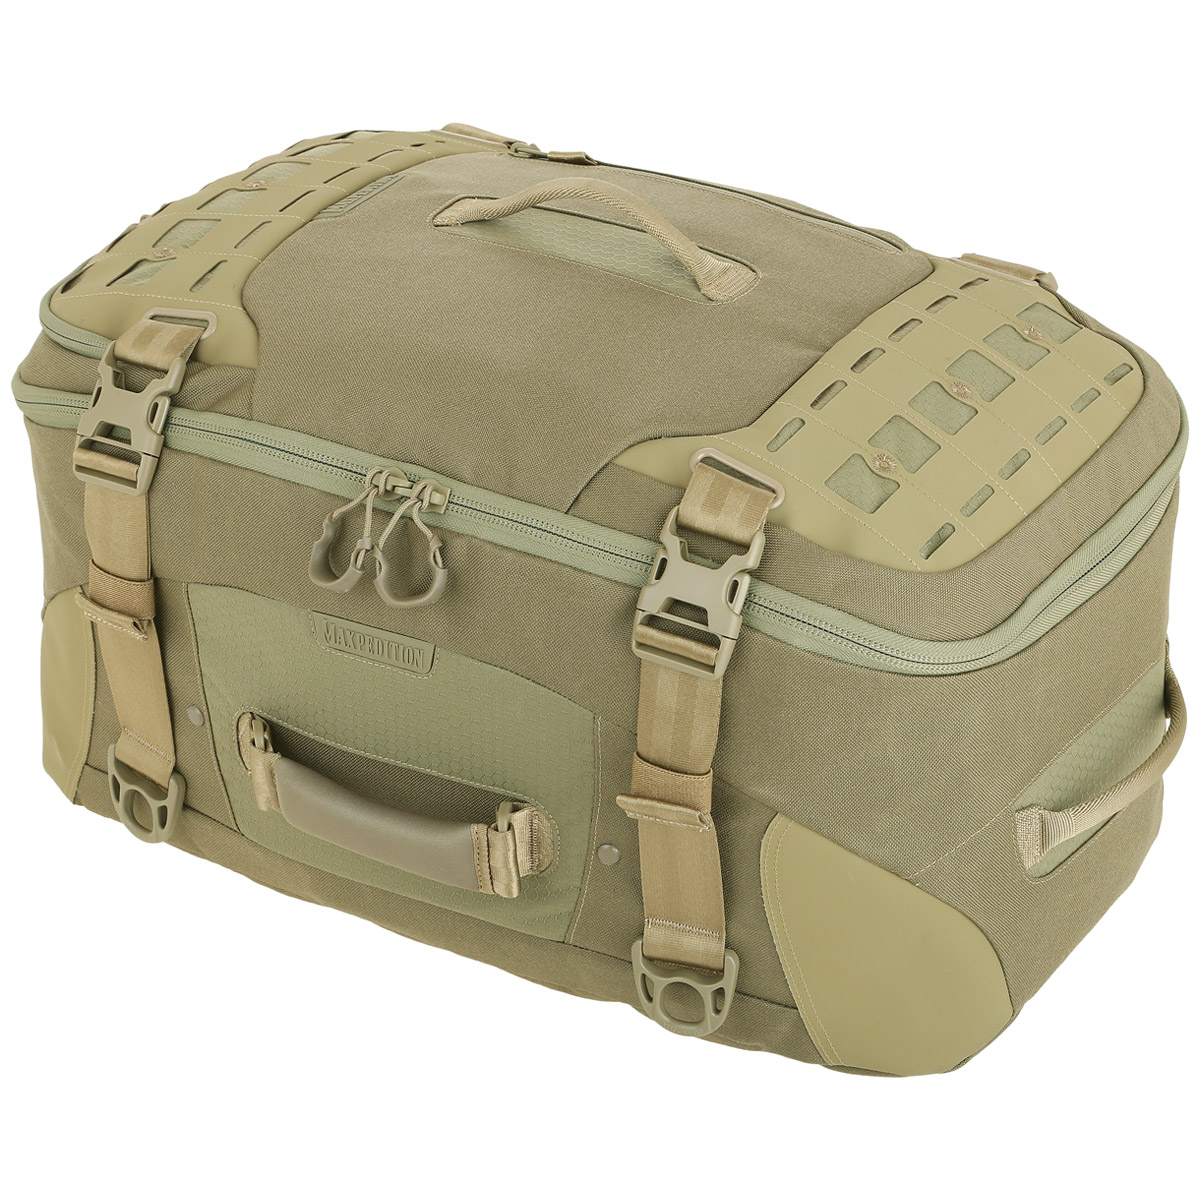 Details about Maxpedition Ironcloud Adventure Travel Bag Padded Backpack  Shoulder Pack Tan 007e43943ea